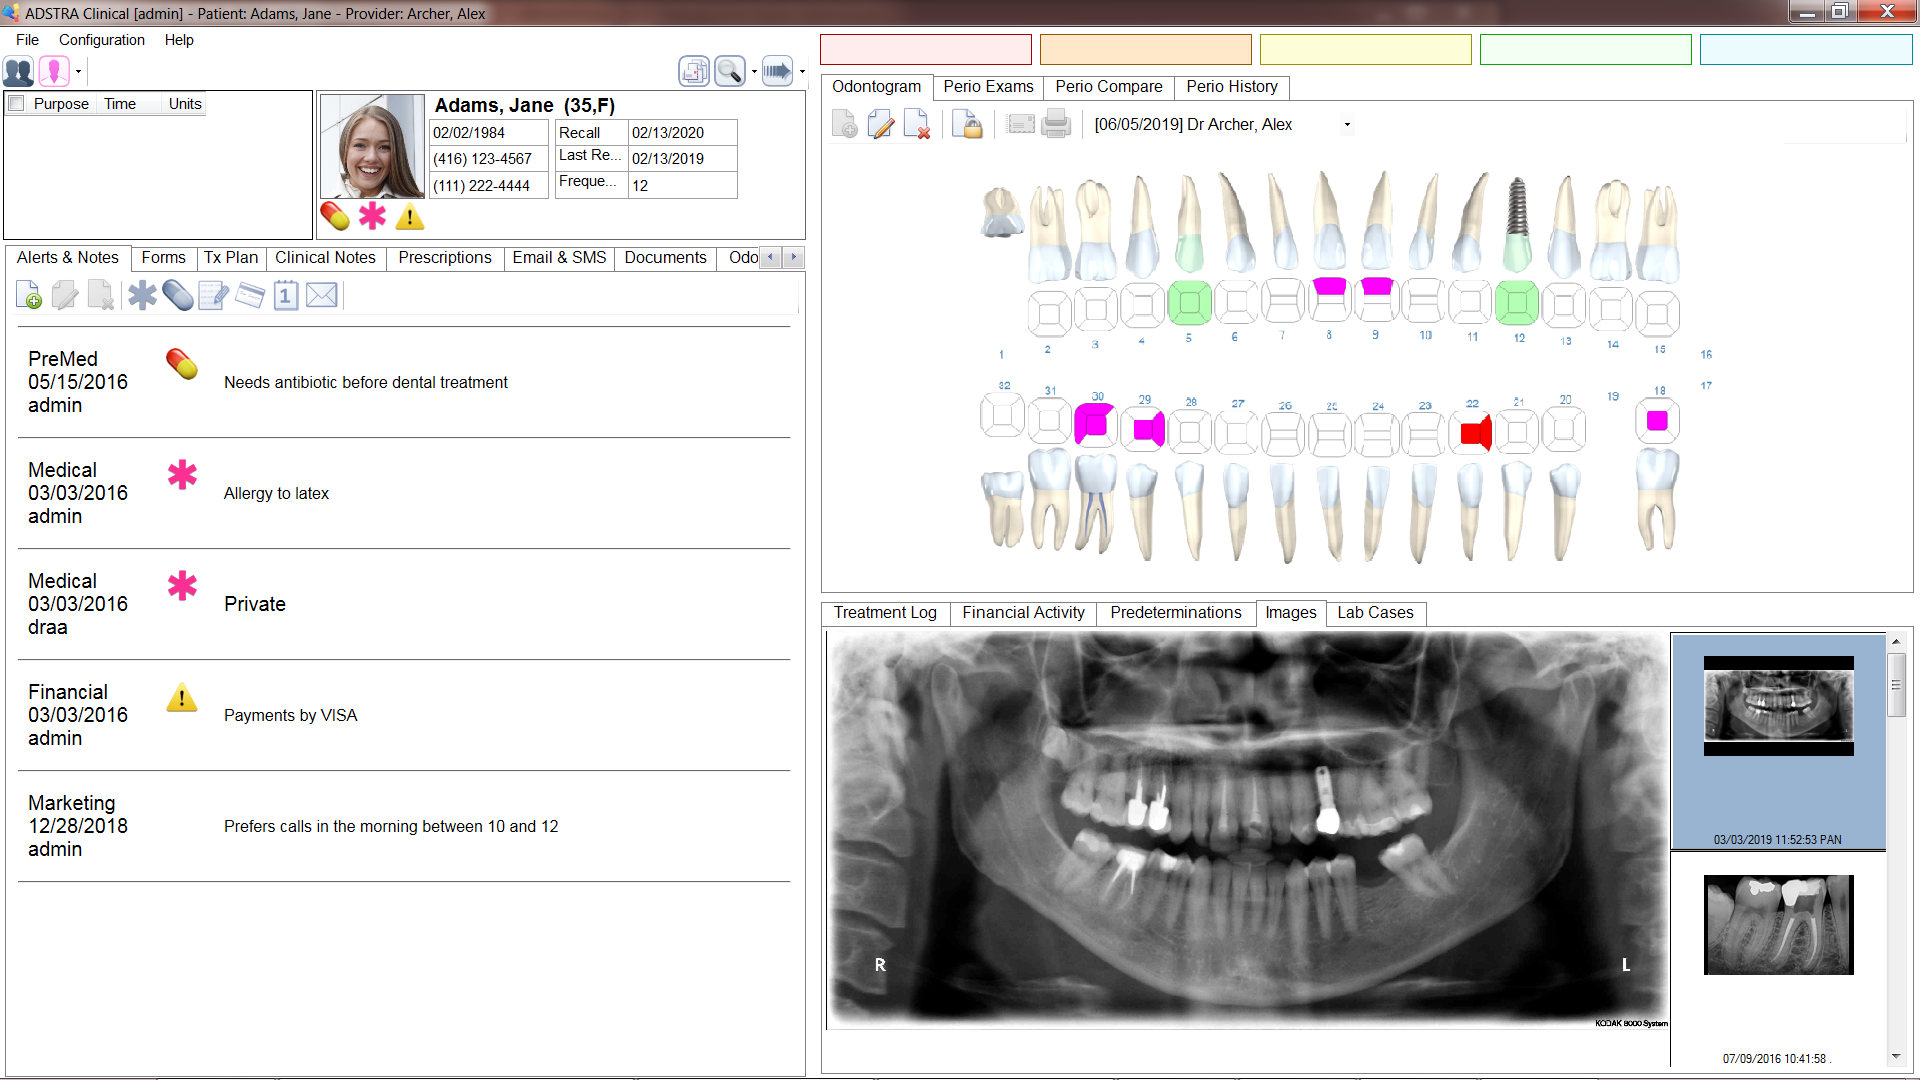 ADSTRA is an integrated dental software solution with an intuitive, user-friendly interface with tools for managing all aspects of patient care.